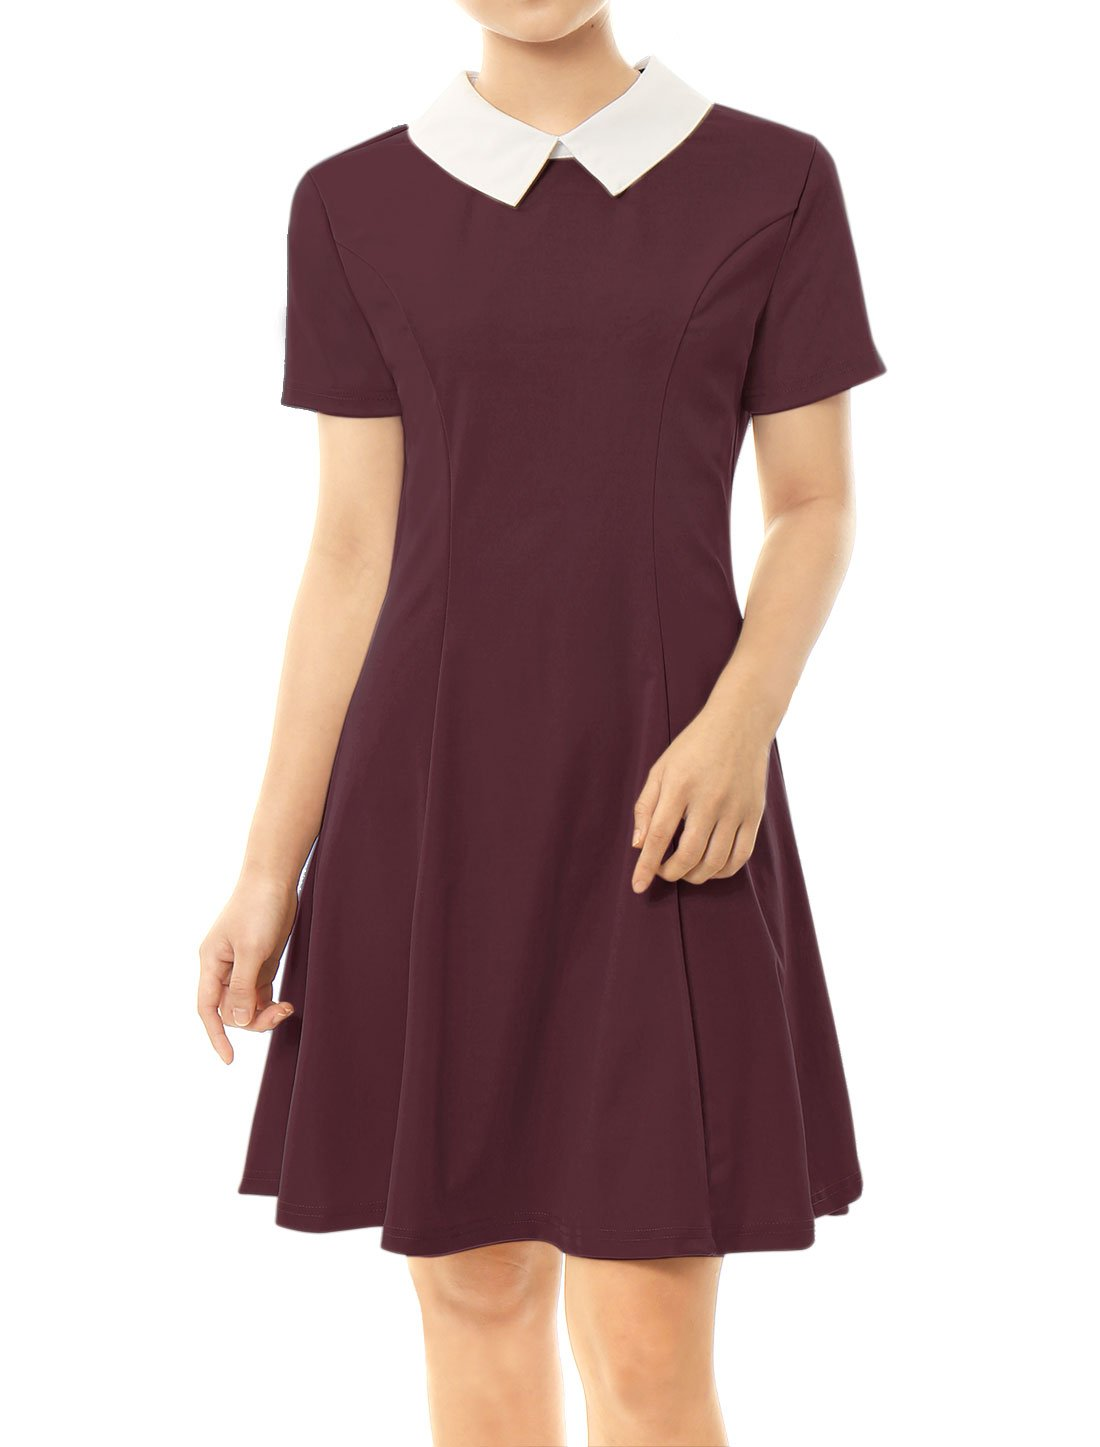 Allegra K Women's Contrast Doll Collar Short Sleeves Above Knee Flare Dress g15030500ux0002